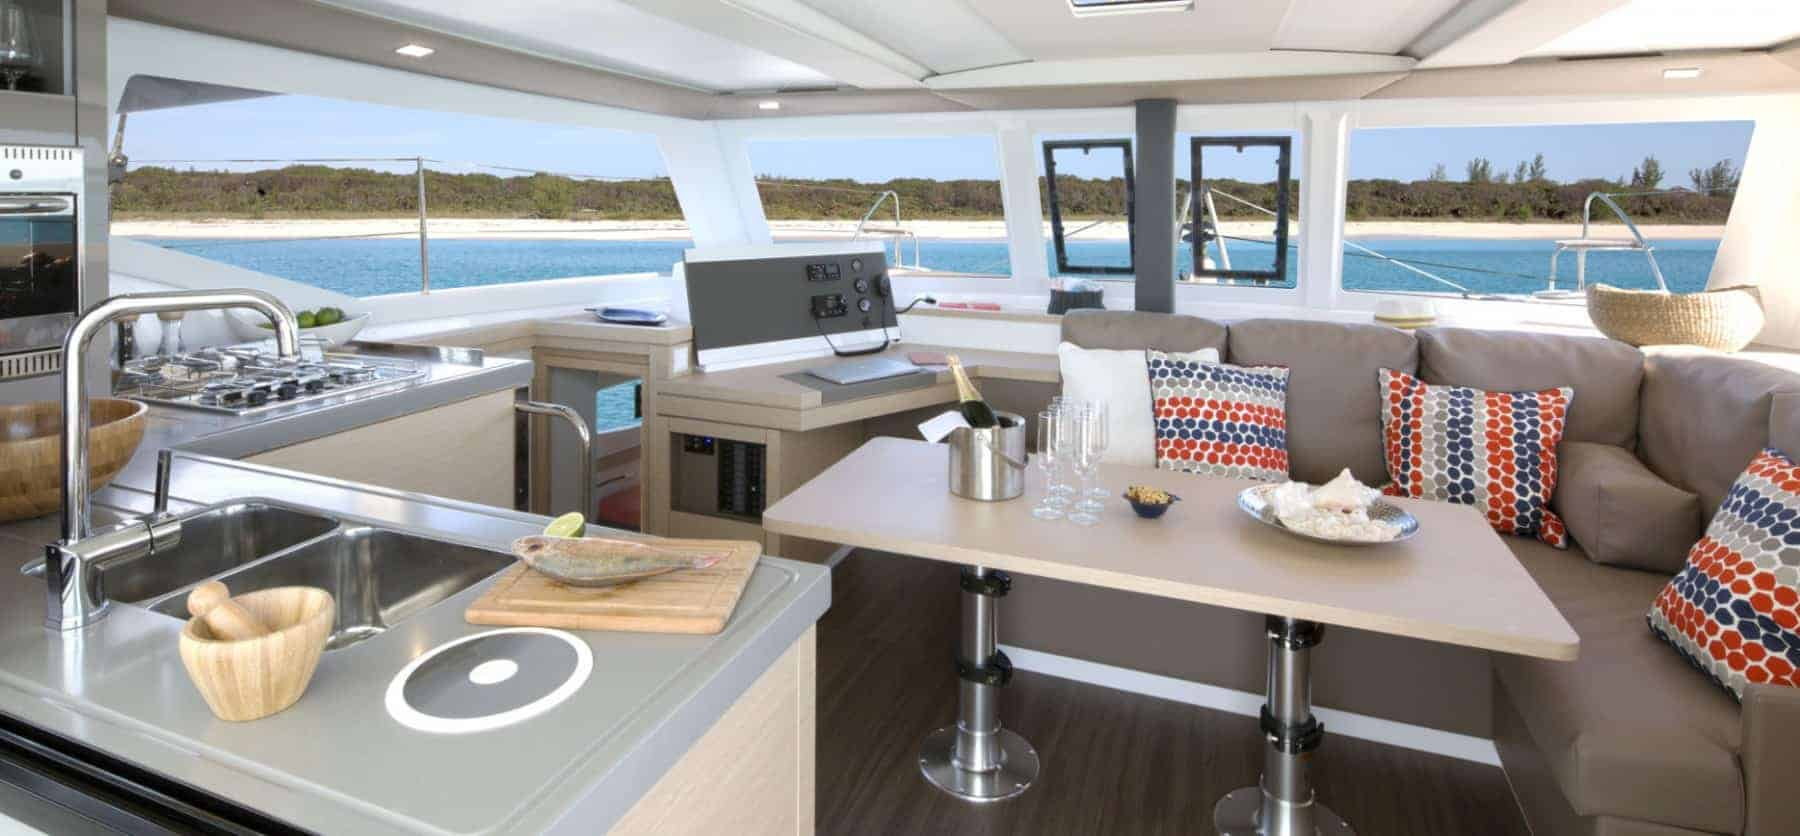 The beautiful, home feeling galley of the Fountaine Pajot Lucia 40 with a nice beach in the background